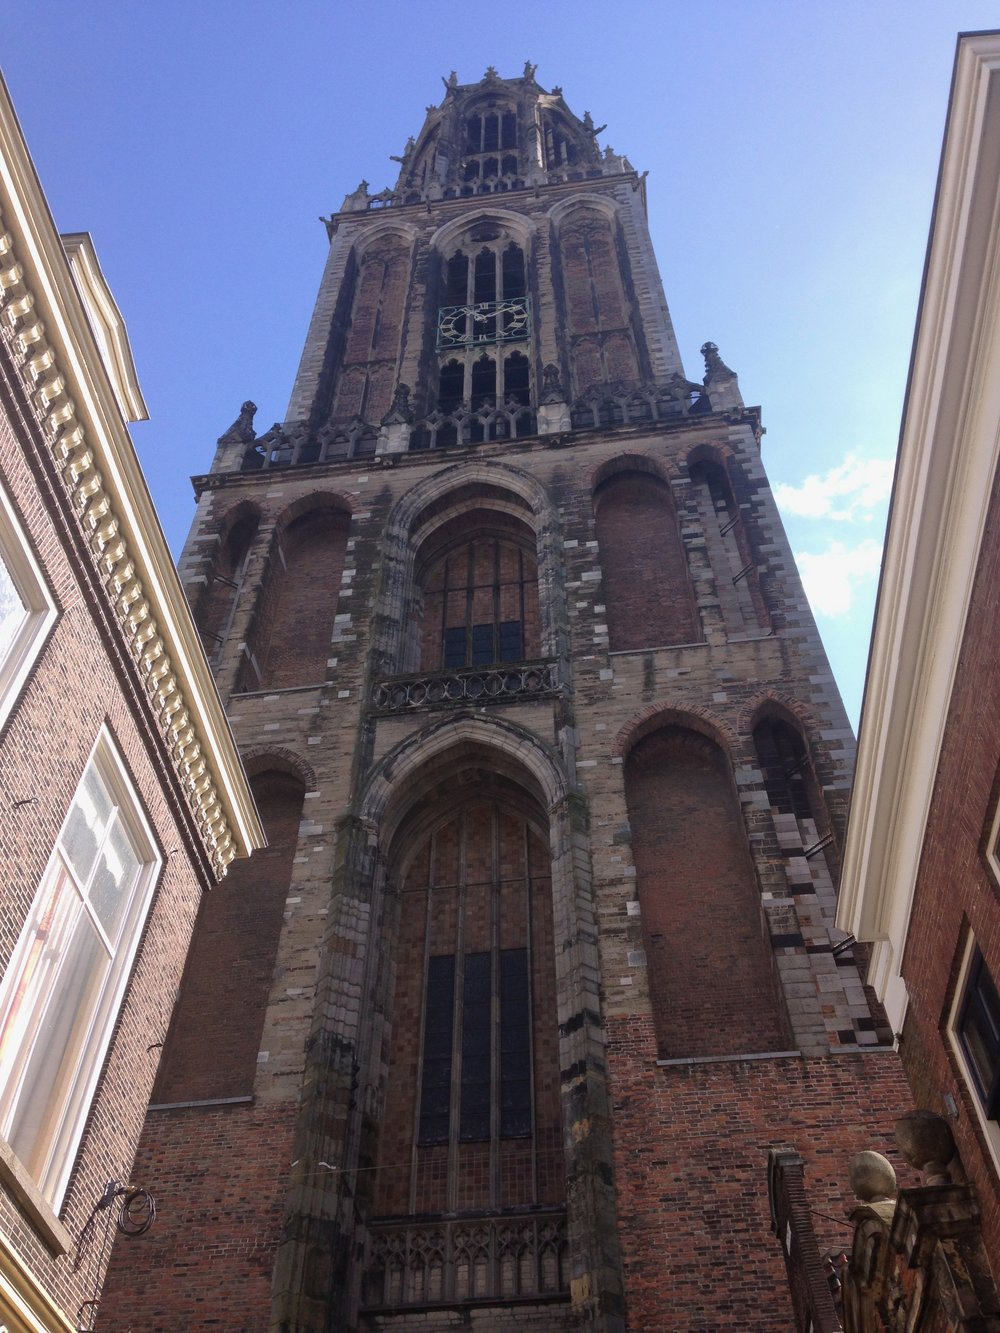 The Dom Tower.